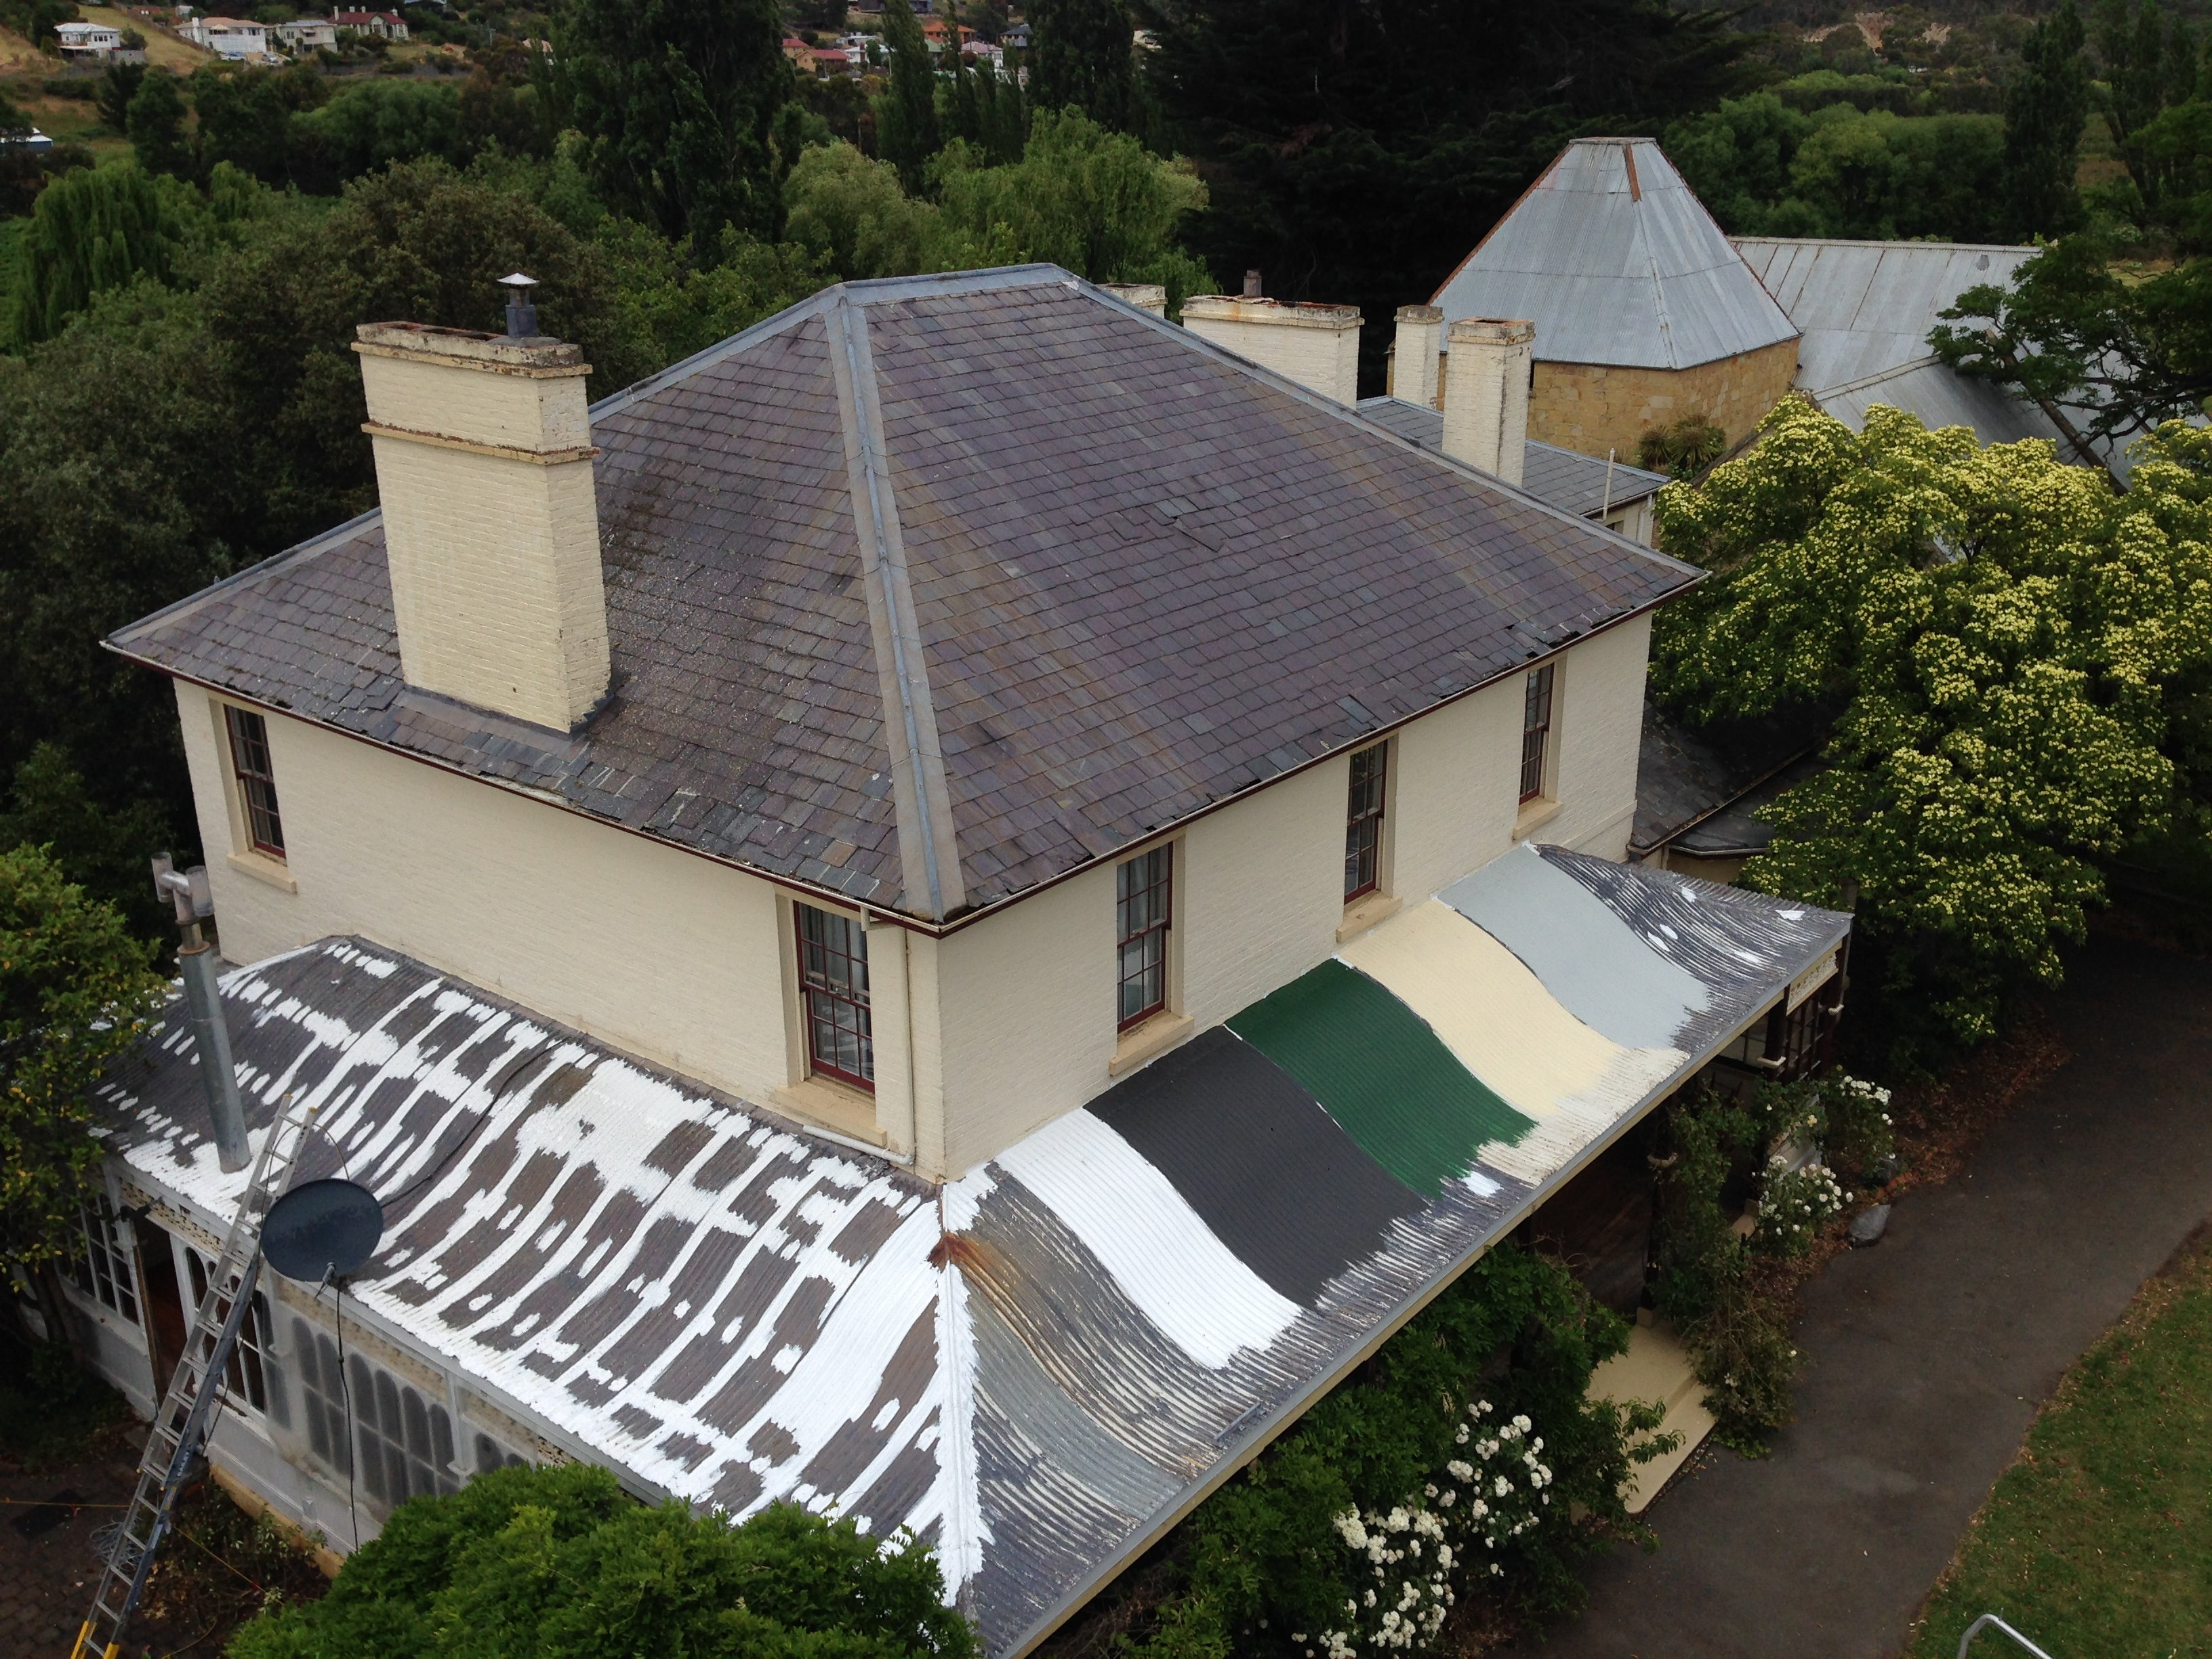 Ogee style colnial verandah roof Roof restoration repairs small cottage painting heritage and slate roofing hobart australia